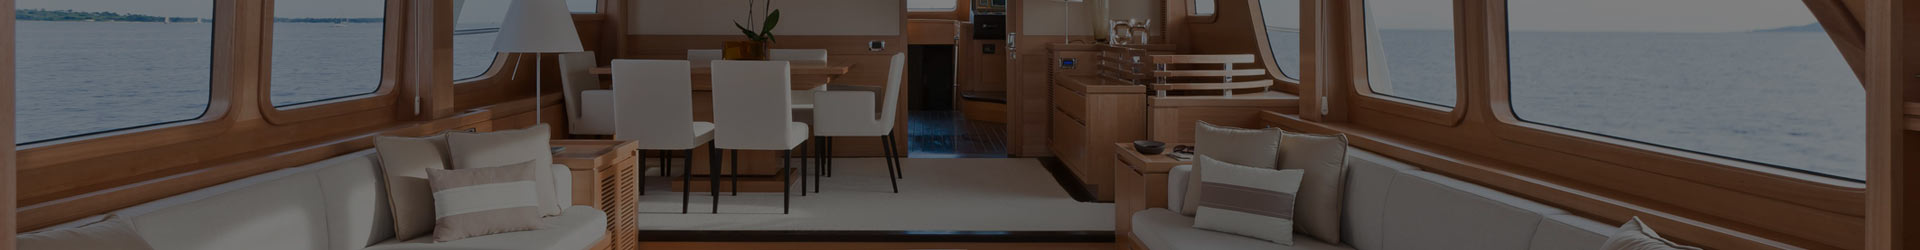 H12506-REND1-Vernon-AD-carpet-only